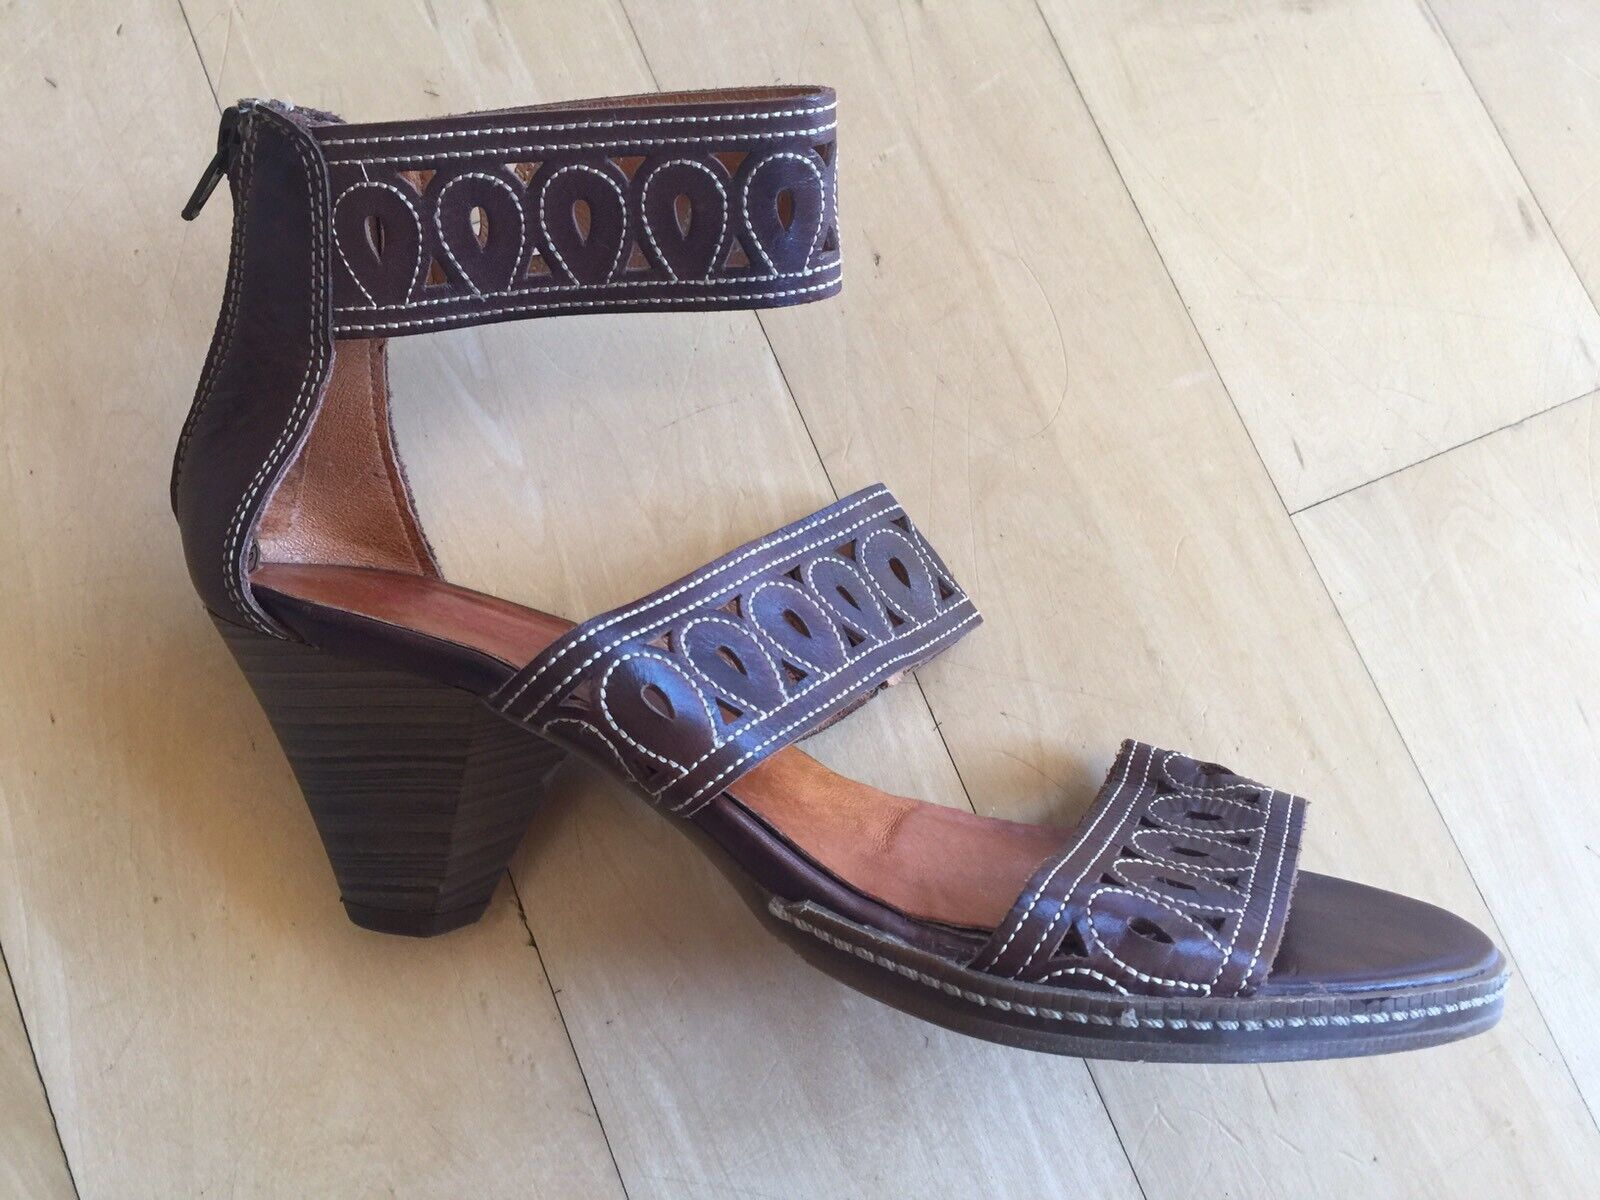 PIKOLINOS PIKOLINOS PIKOLINOS Brown Pierced Leather Strappy Gladiator Block Heel Sandals 40  9.5 10 c32cdd